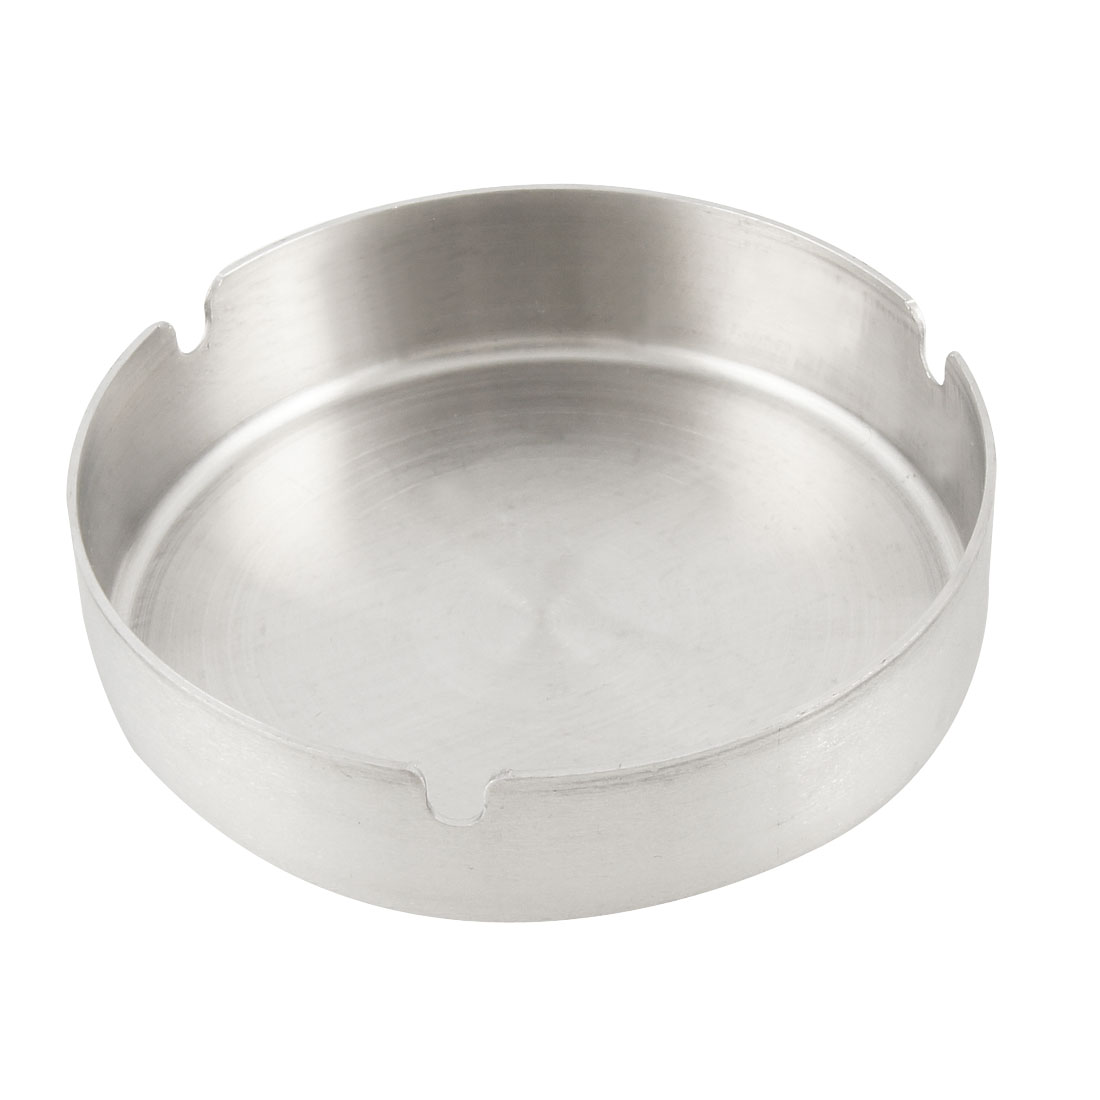 Home Silver Tone 12cm Dia Stainless Steel Round Cigarette Ashtray